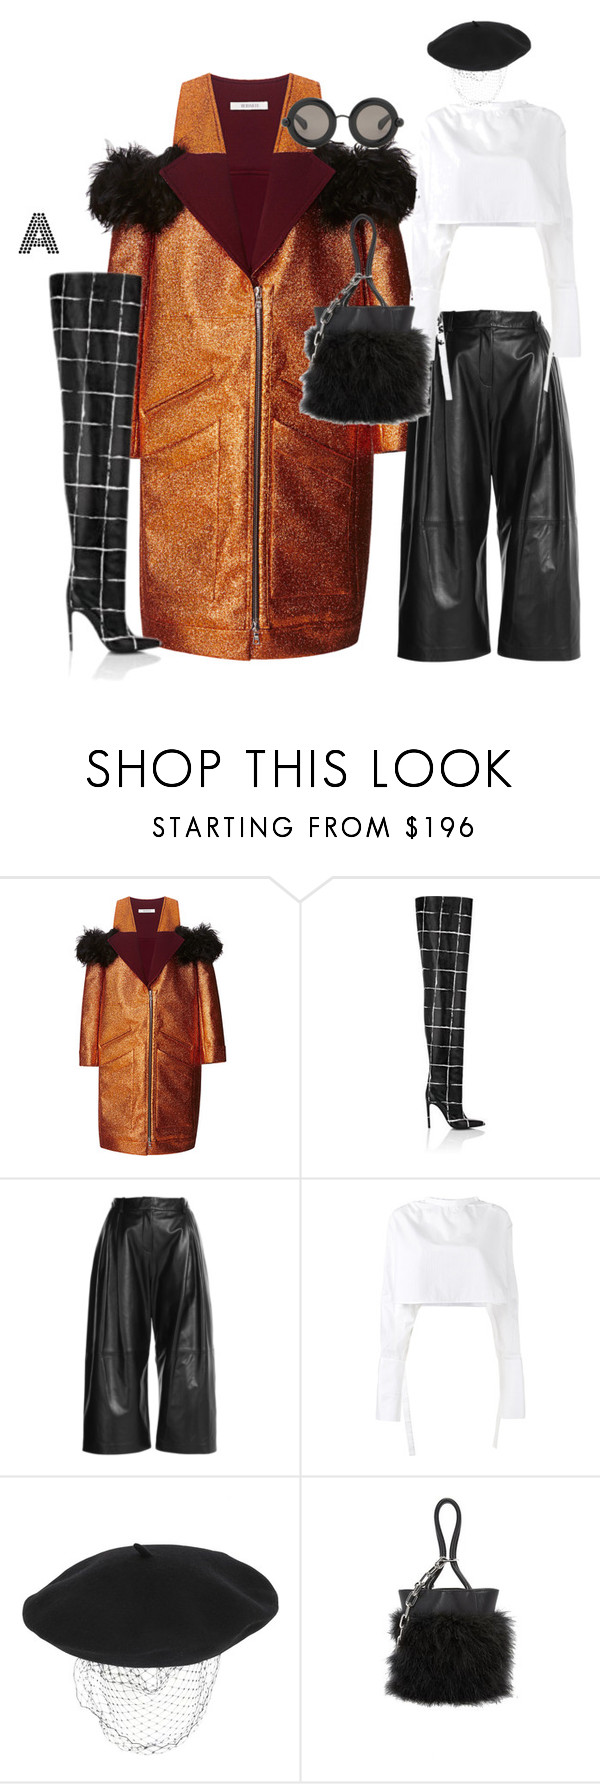 """FASHION WEEK LOOKS"" by stylzbyang ❤ liked on Polyvore featuring Rodarte, Balenciaga, McQ by Alexander McQueen, E L L E R Y, Silver Spoon Attire, Alexander Wang and Christopher Kane"